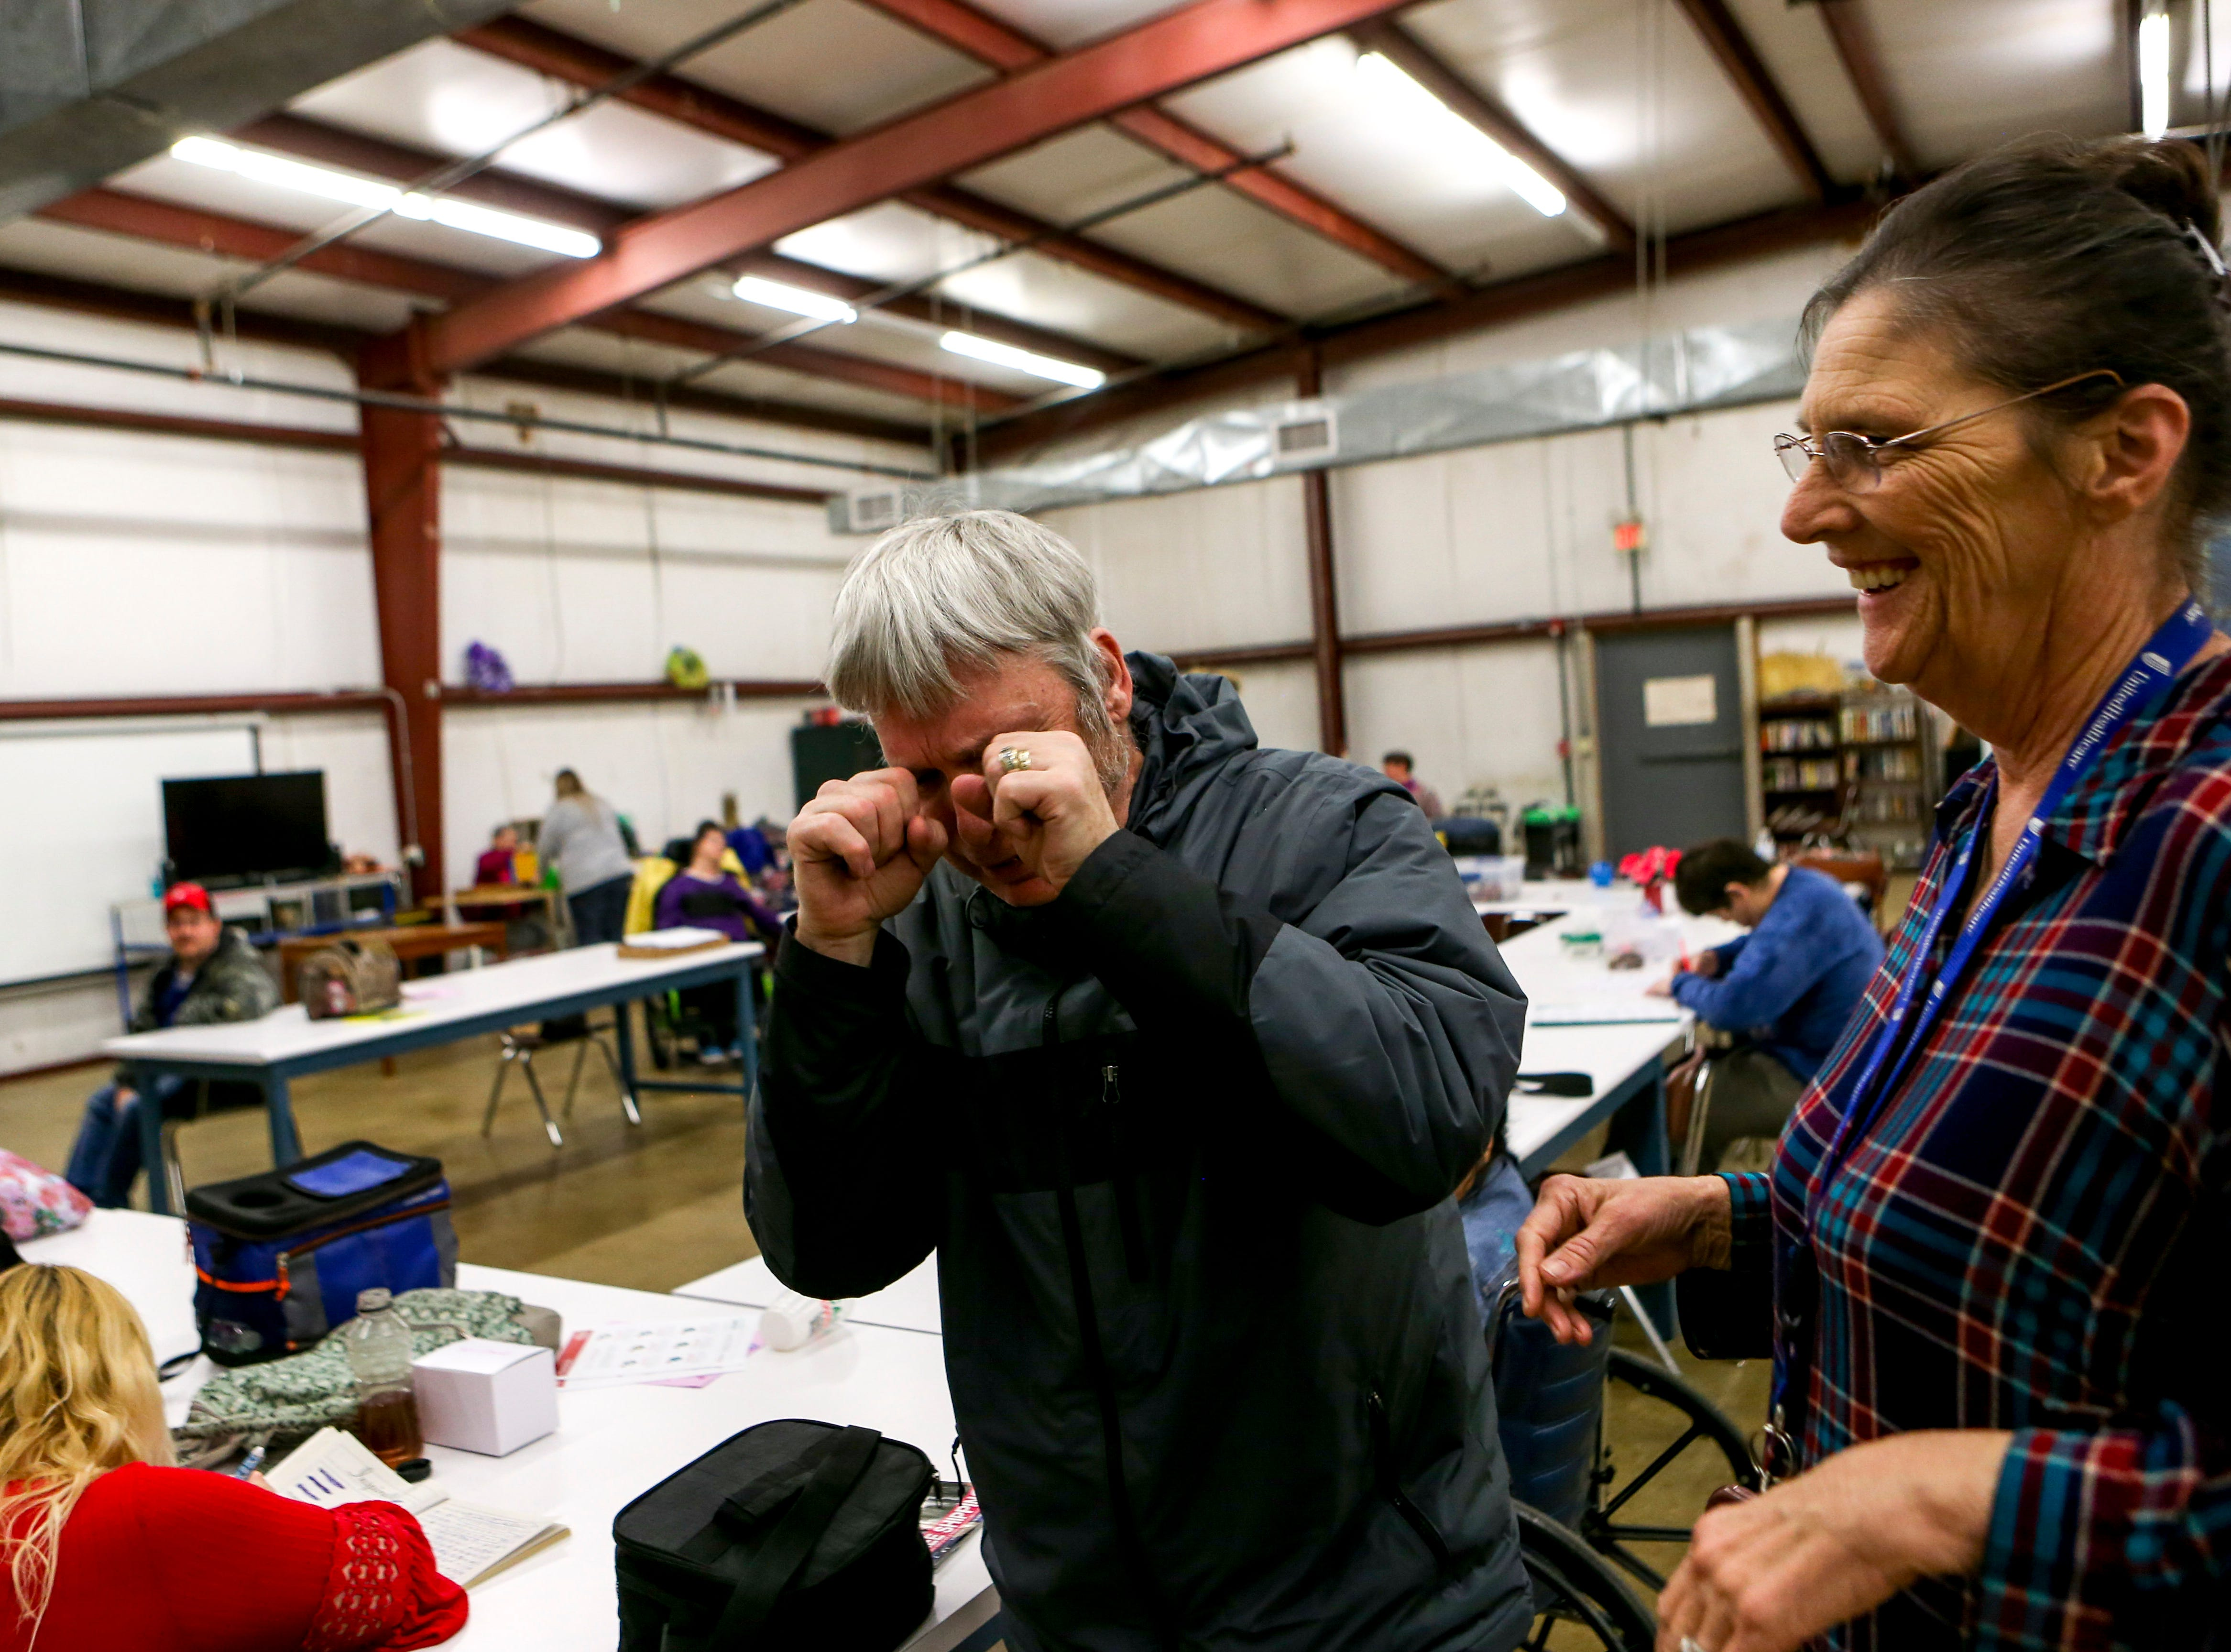 Tommy Walker jokes about how sad he is with Elaine Gladish after classes at McNairy Developmental Services in Selmer, Tenn., on Thursday, Feb. 21, 2019.